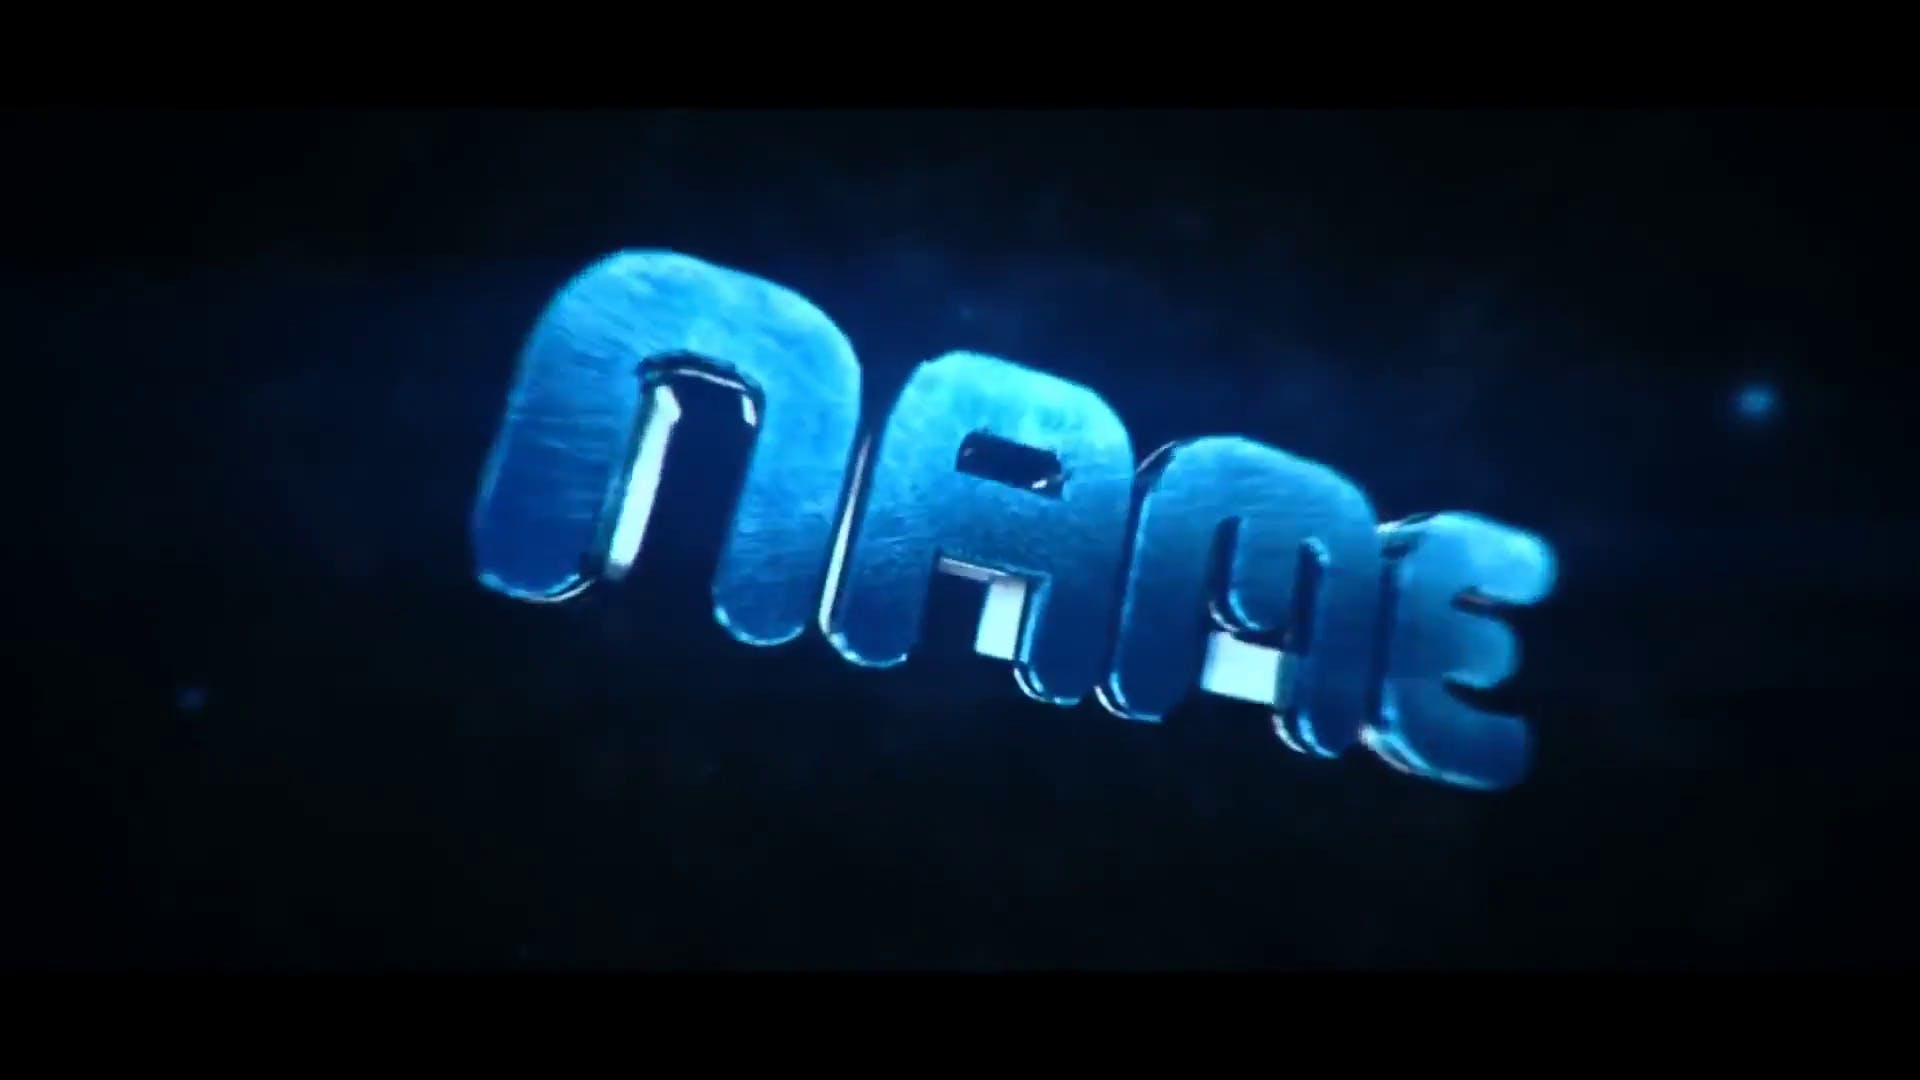 3D Bounce Sync Intro Template FREE DOWNLOAD